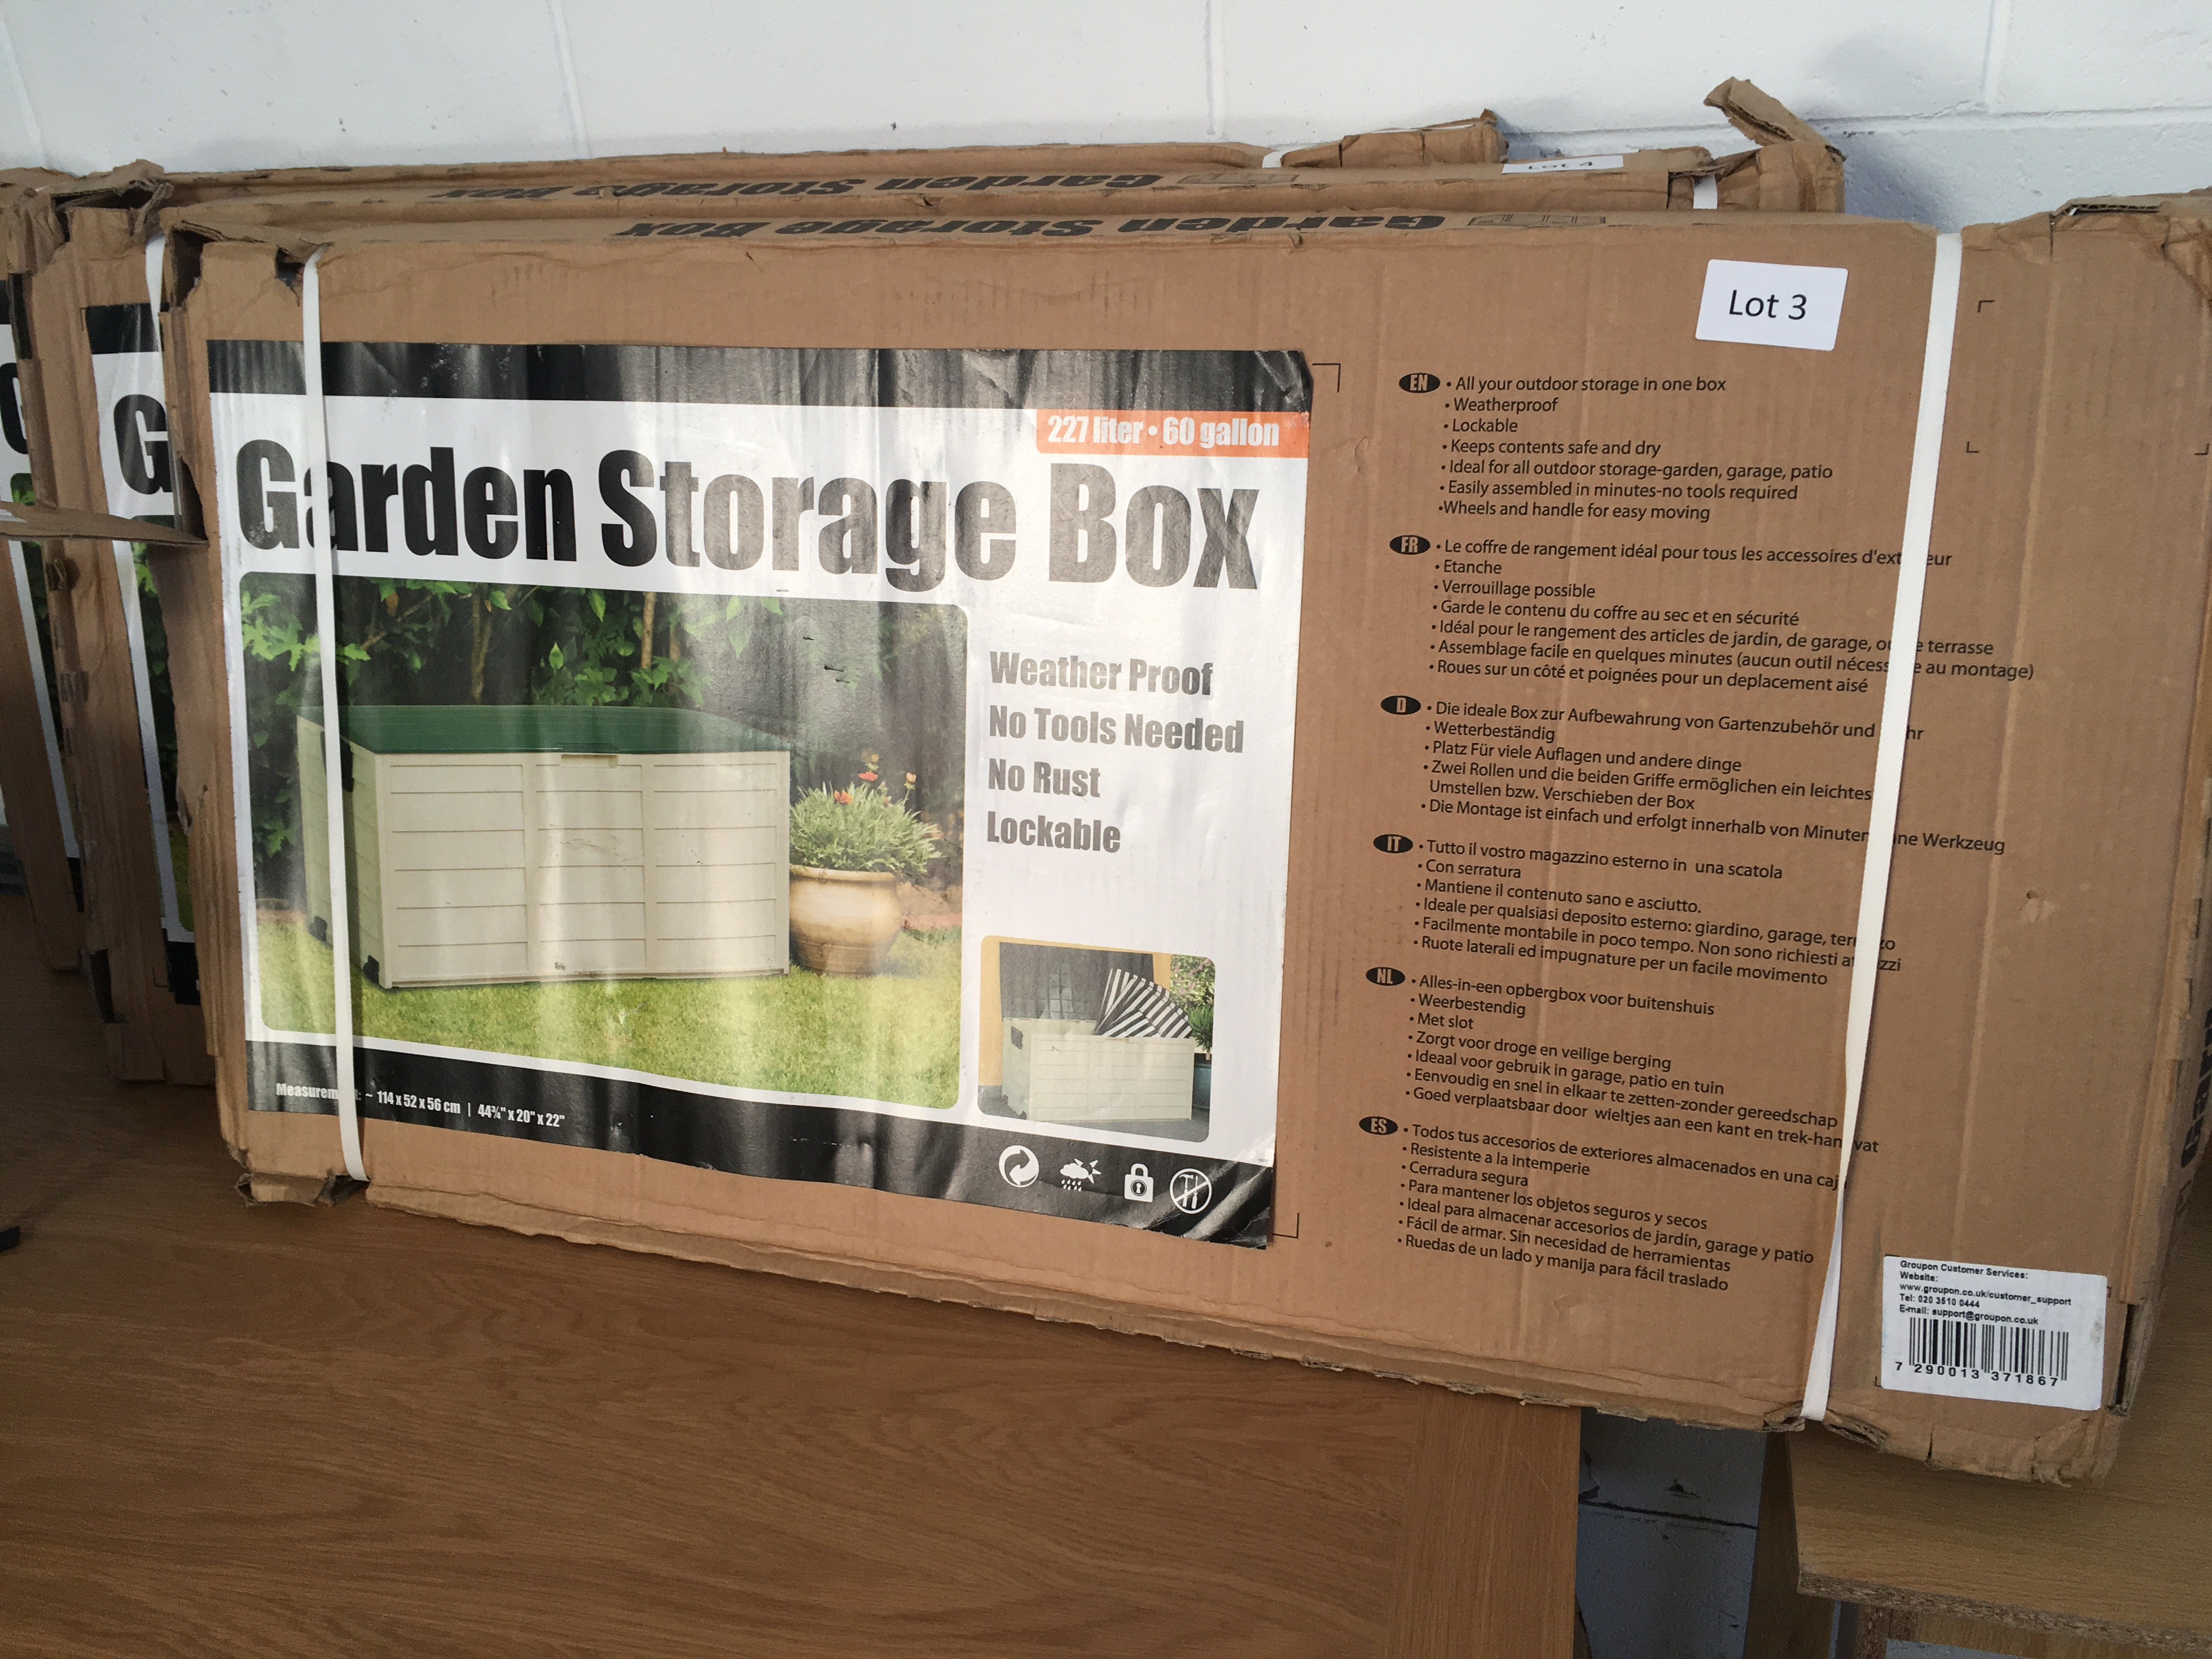 Lot 5 - 227 litre garden storage box. Bad packaging.